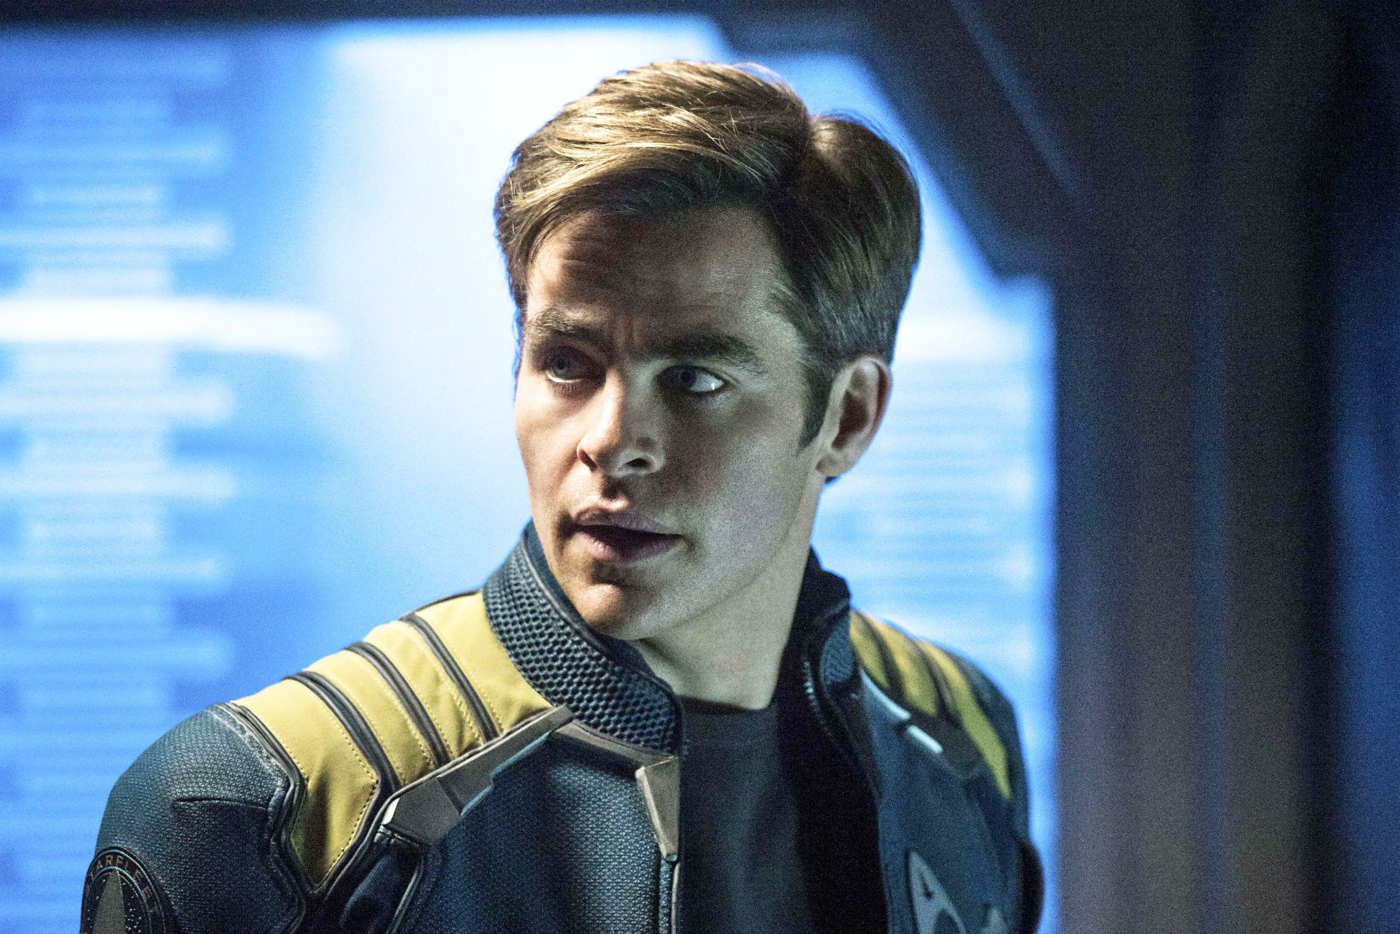 The Best 'Star Trek' Captains, Ranked by Competency